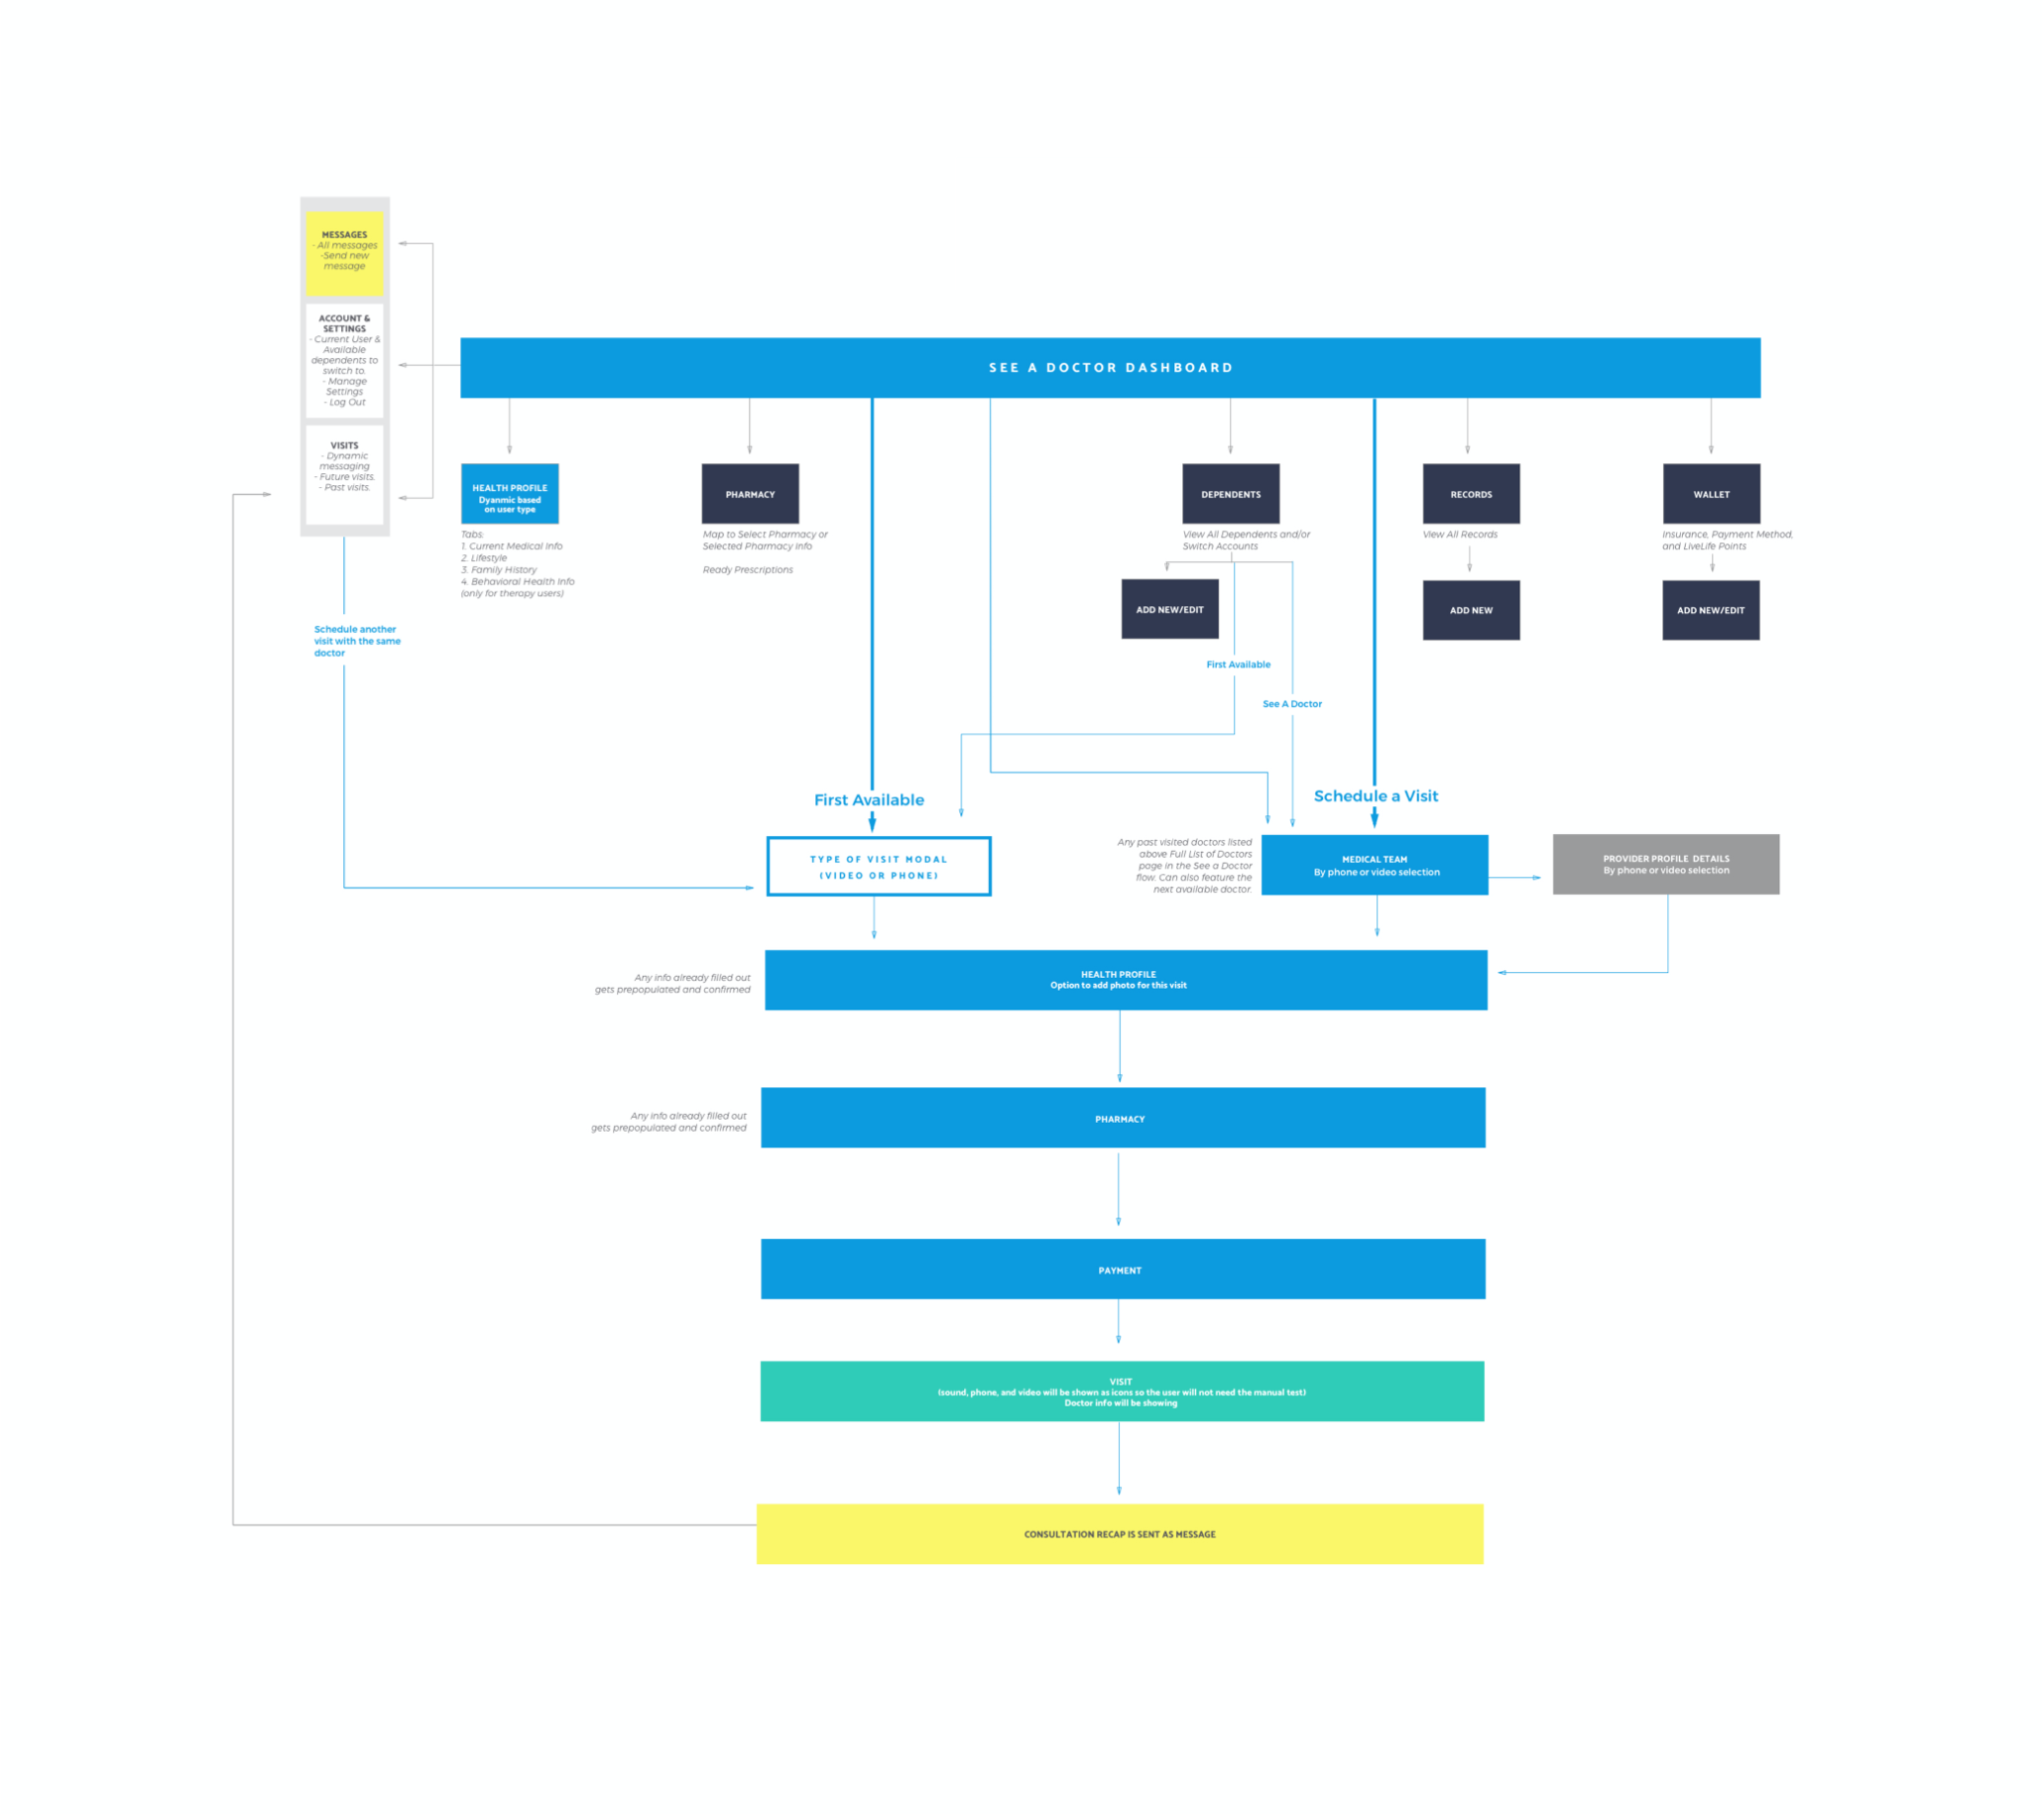 Flow diagram showing new and improved user flow for MDLIVE